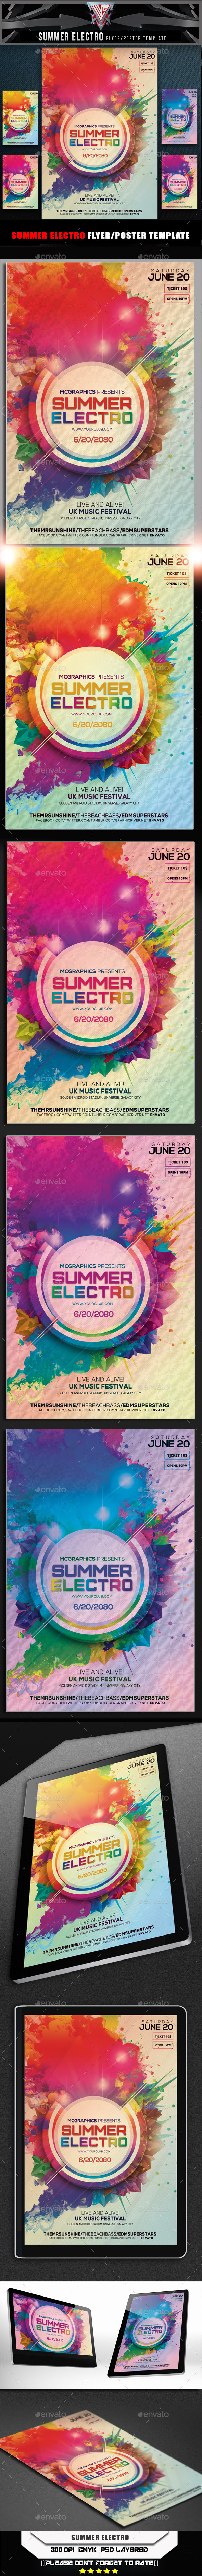 Summer Electro Flyer Template - Events Flyers